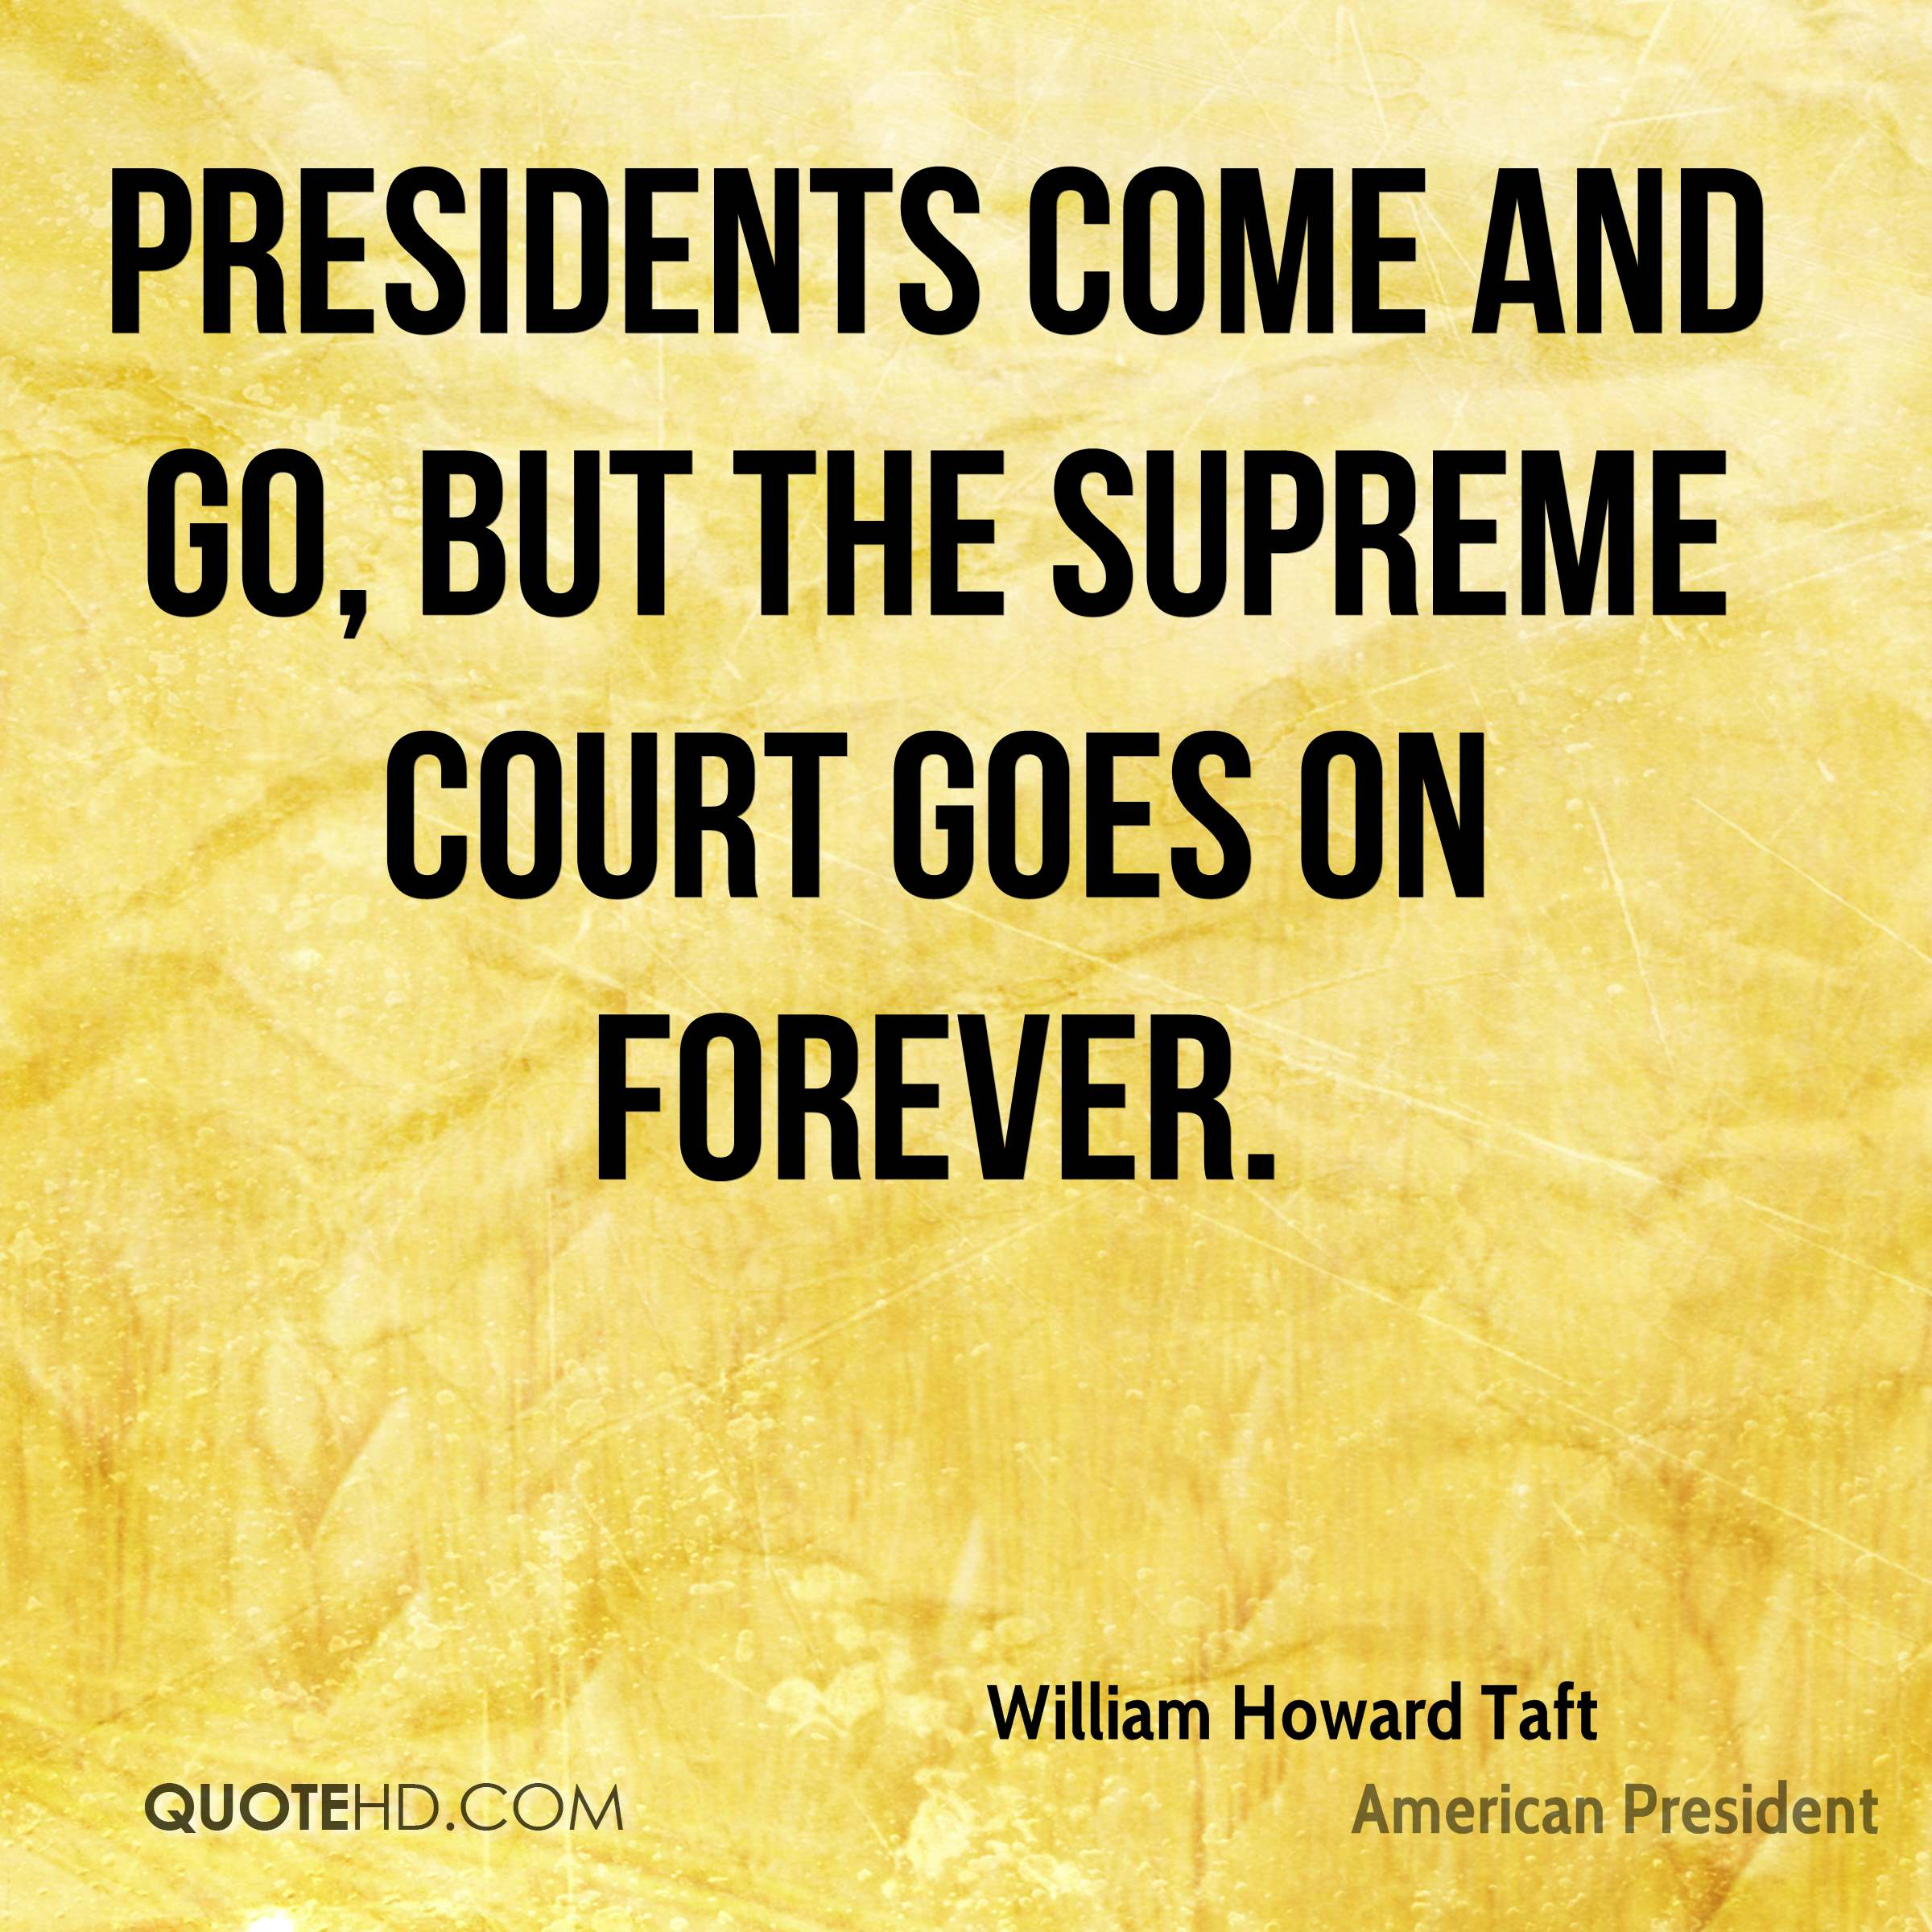 Presidents come and go, but the Supreme Court goes on forever.